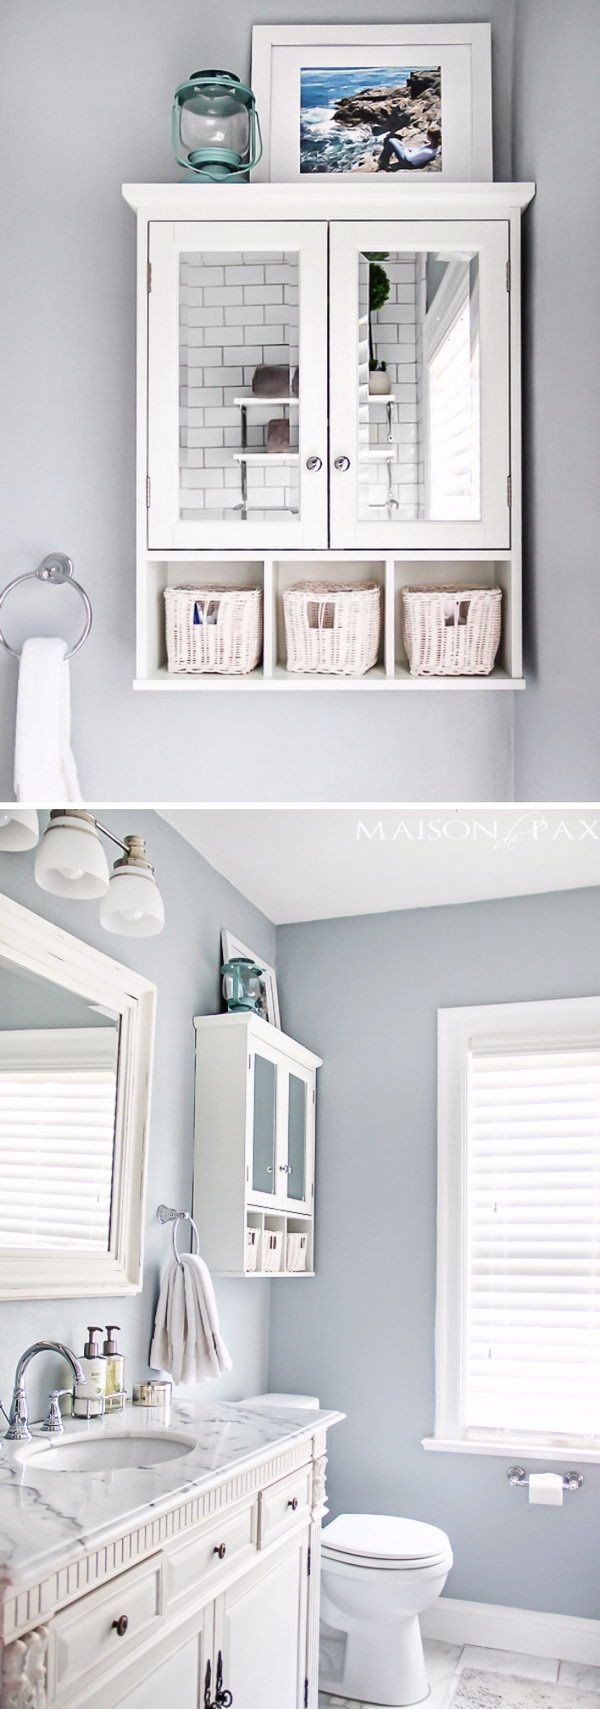 43 Over The Toilet Storage Ideas For Extra Space Mirror Cabinetsbathroom